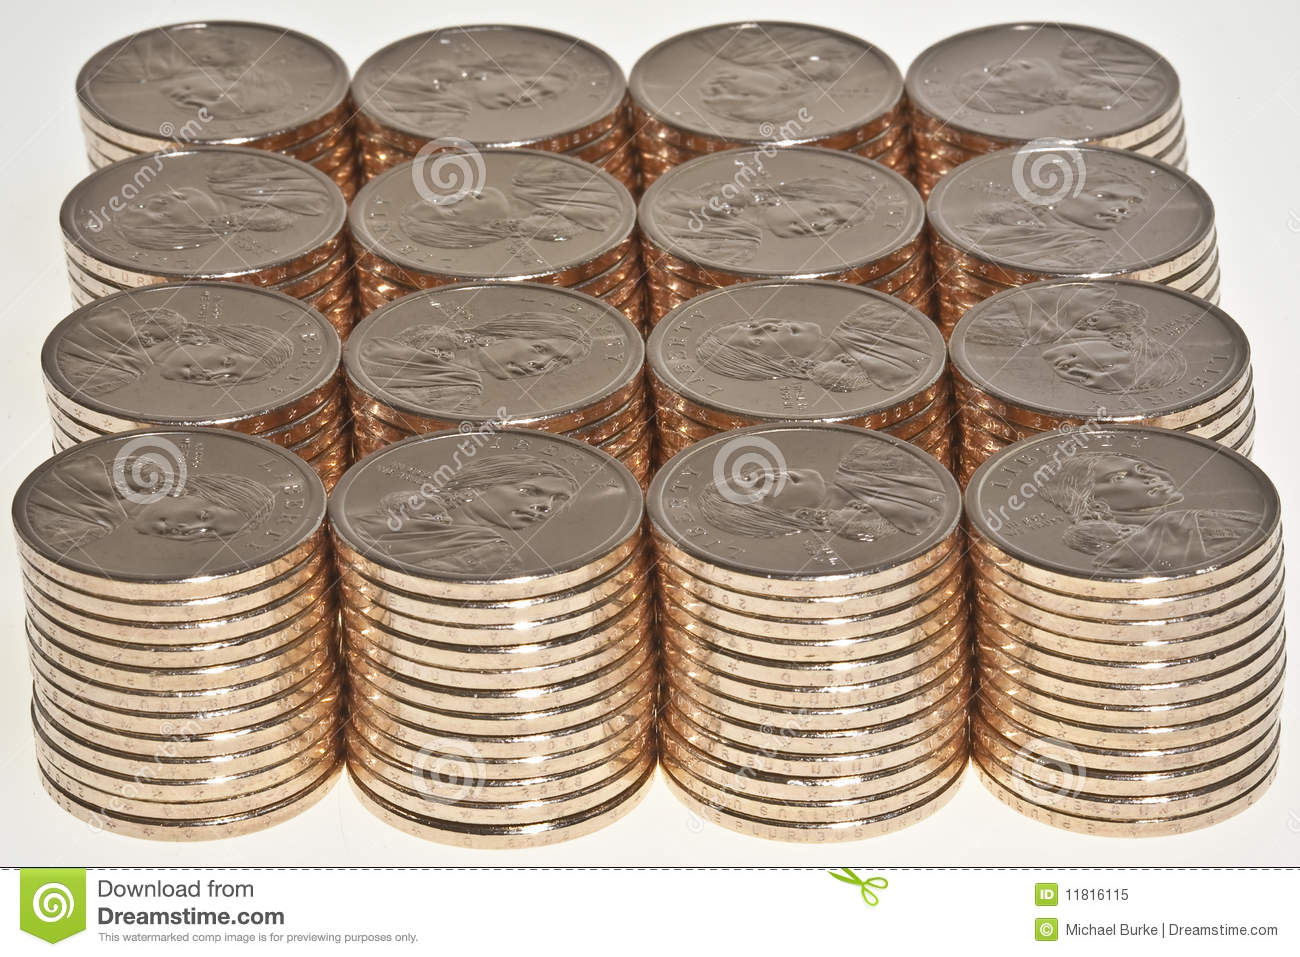 how to draw a stack of coins